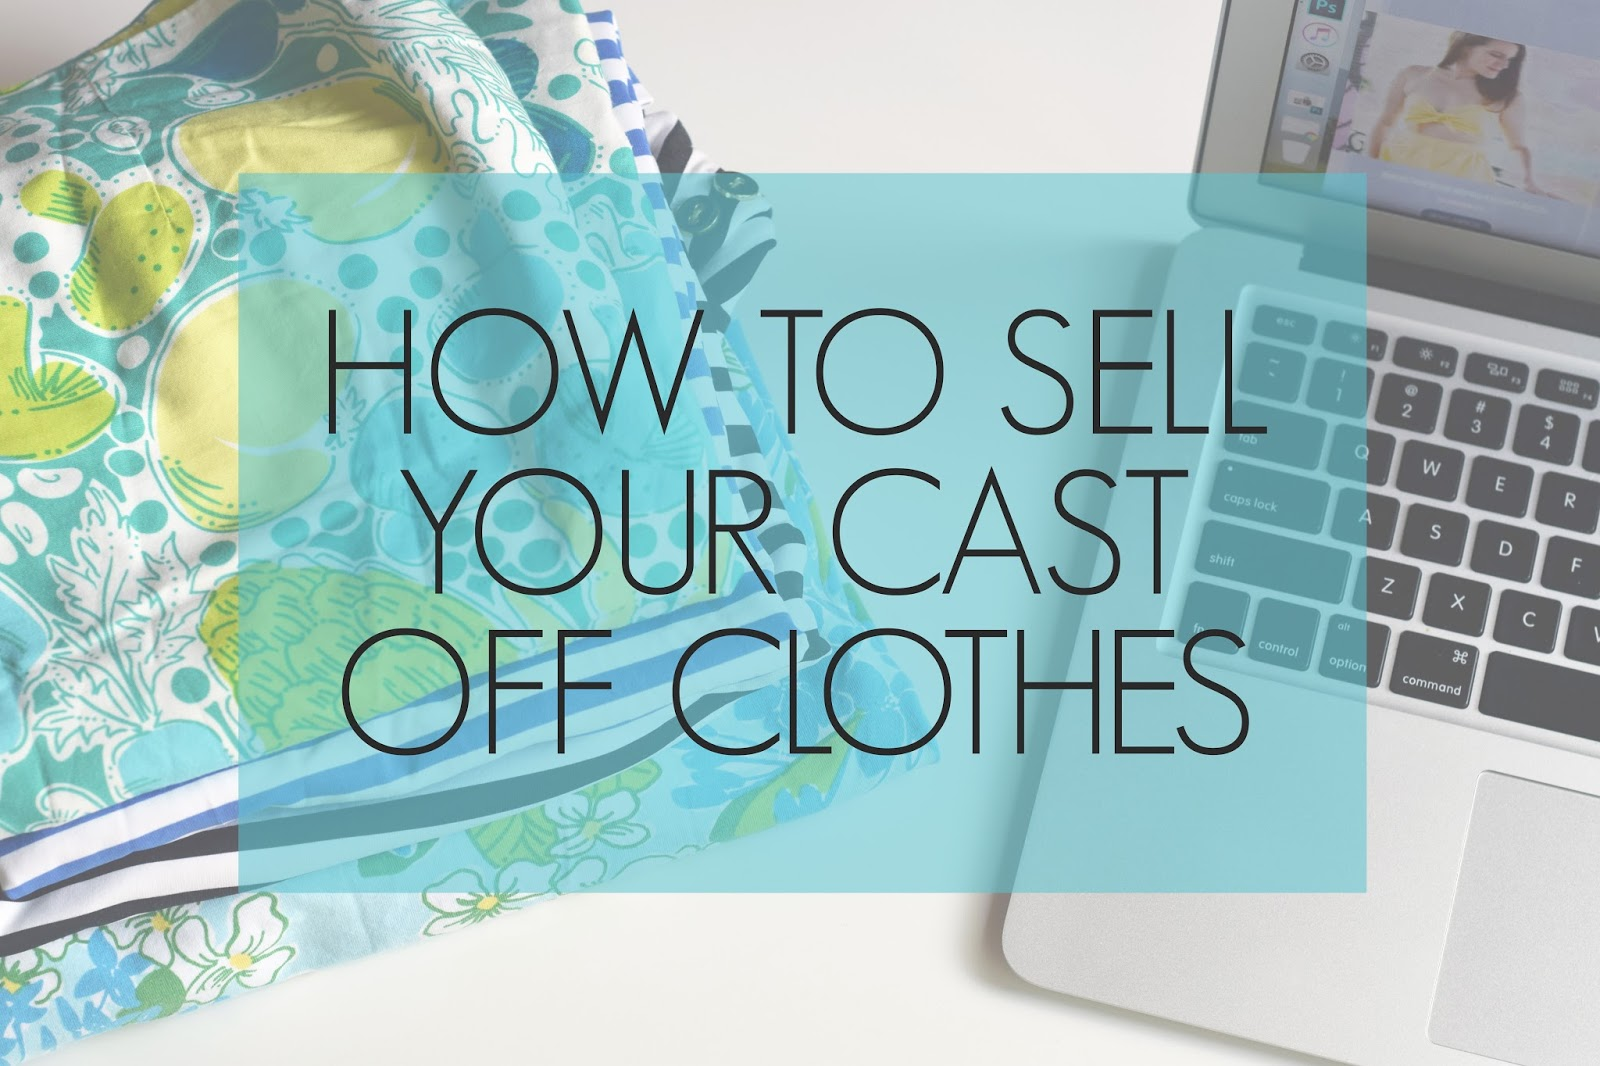 How to Sell Your Cast Off Clothes